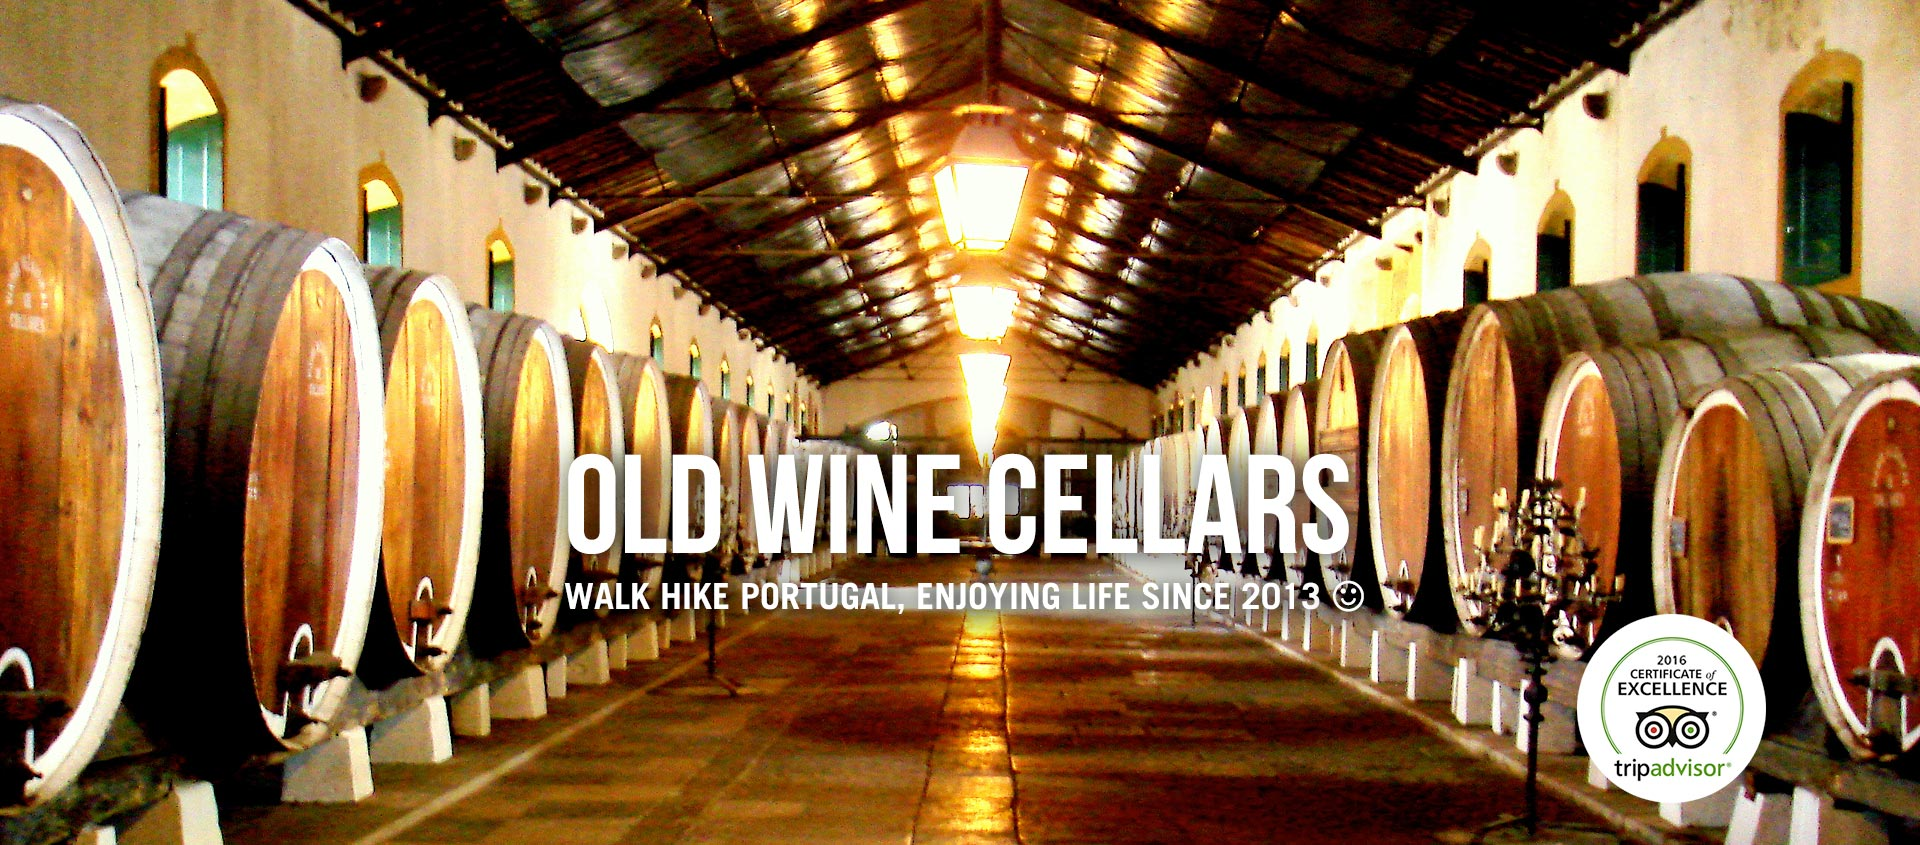 OLD WINE CELLARS